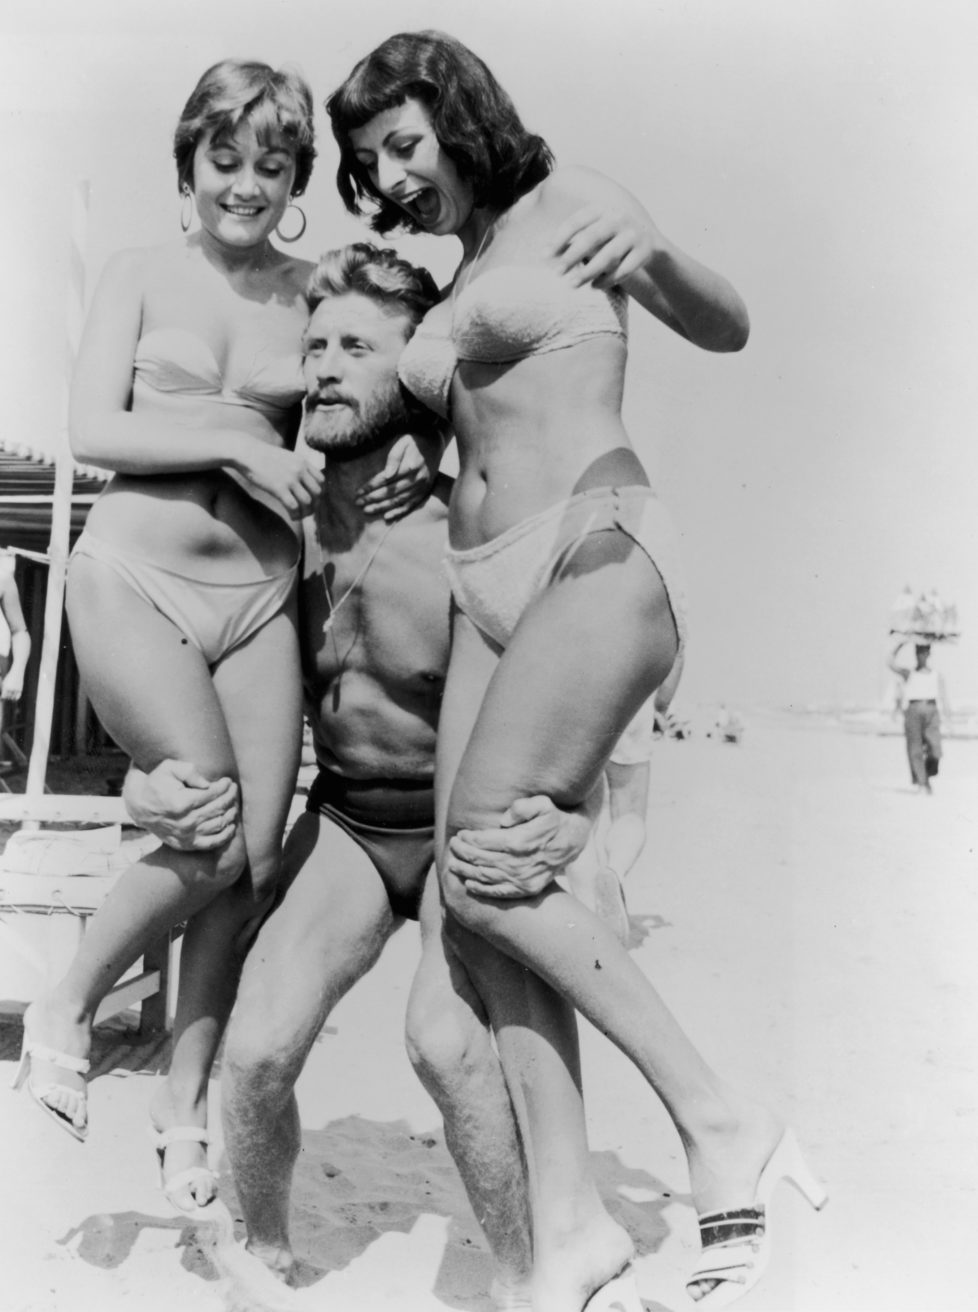 1953: American actor Kirk Douglas, wearing a swimsuit, lifts two women wearing bikinis on a beach during the Venice Film Festival, Italy. (Photo by Hulton Archive/Getty Images)